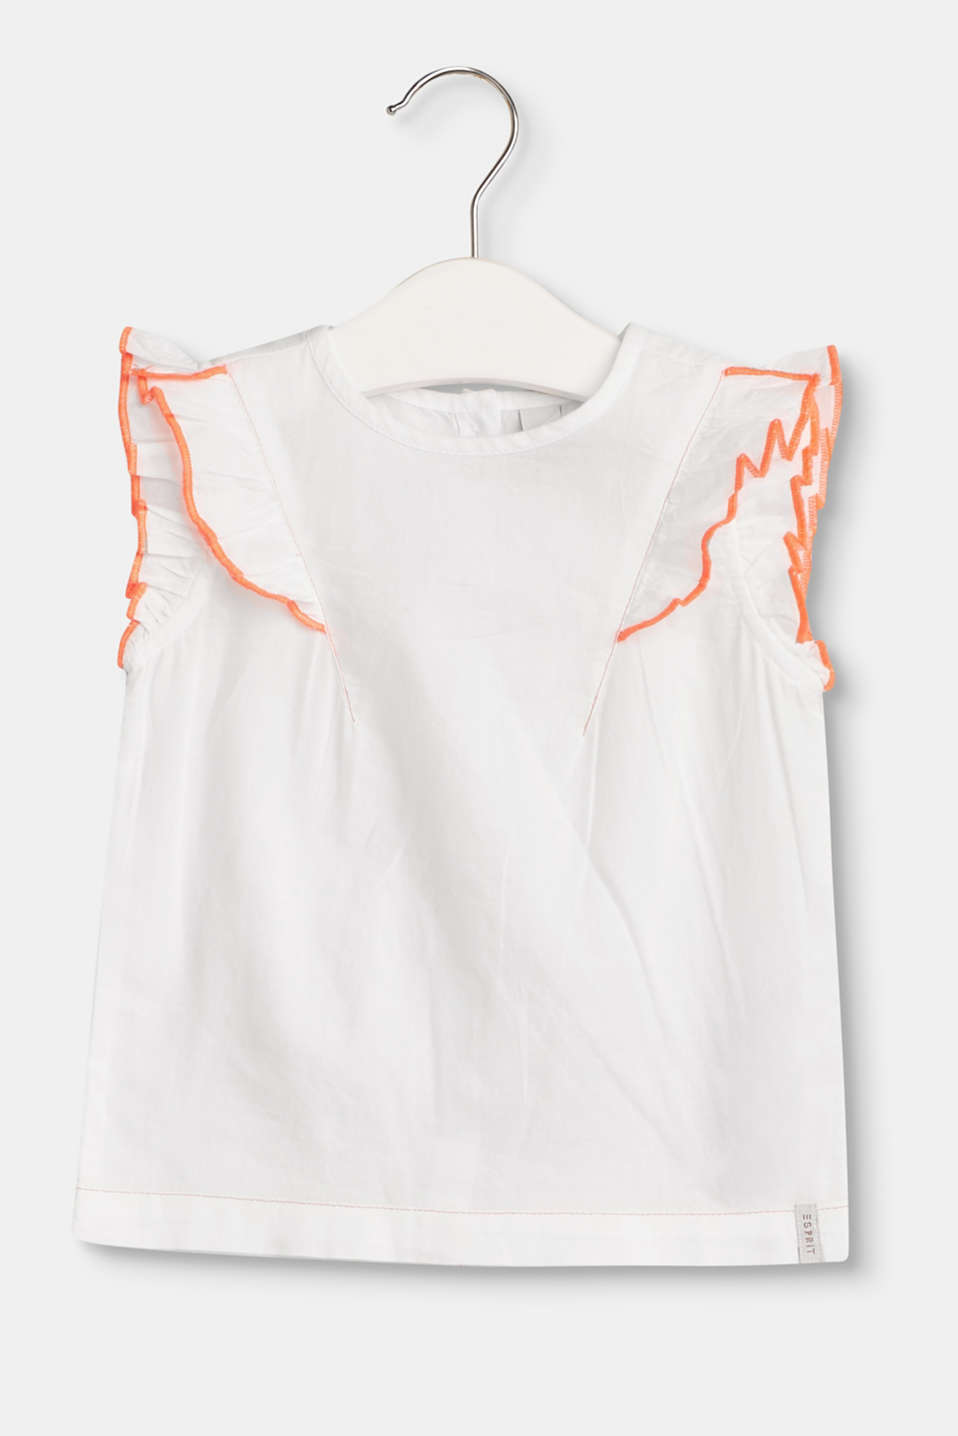 Esprit - Lightweight blouse with frilled sleeves, 100% cotton